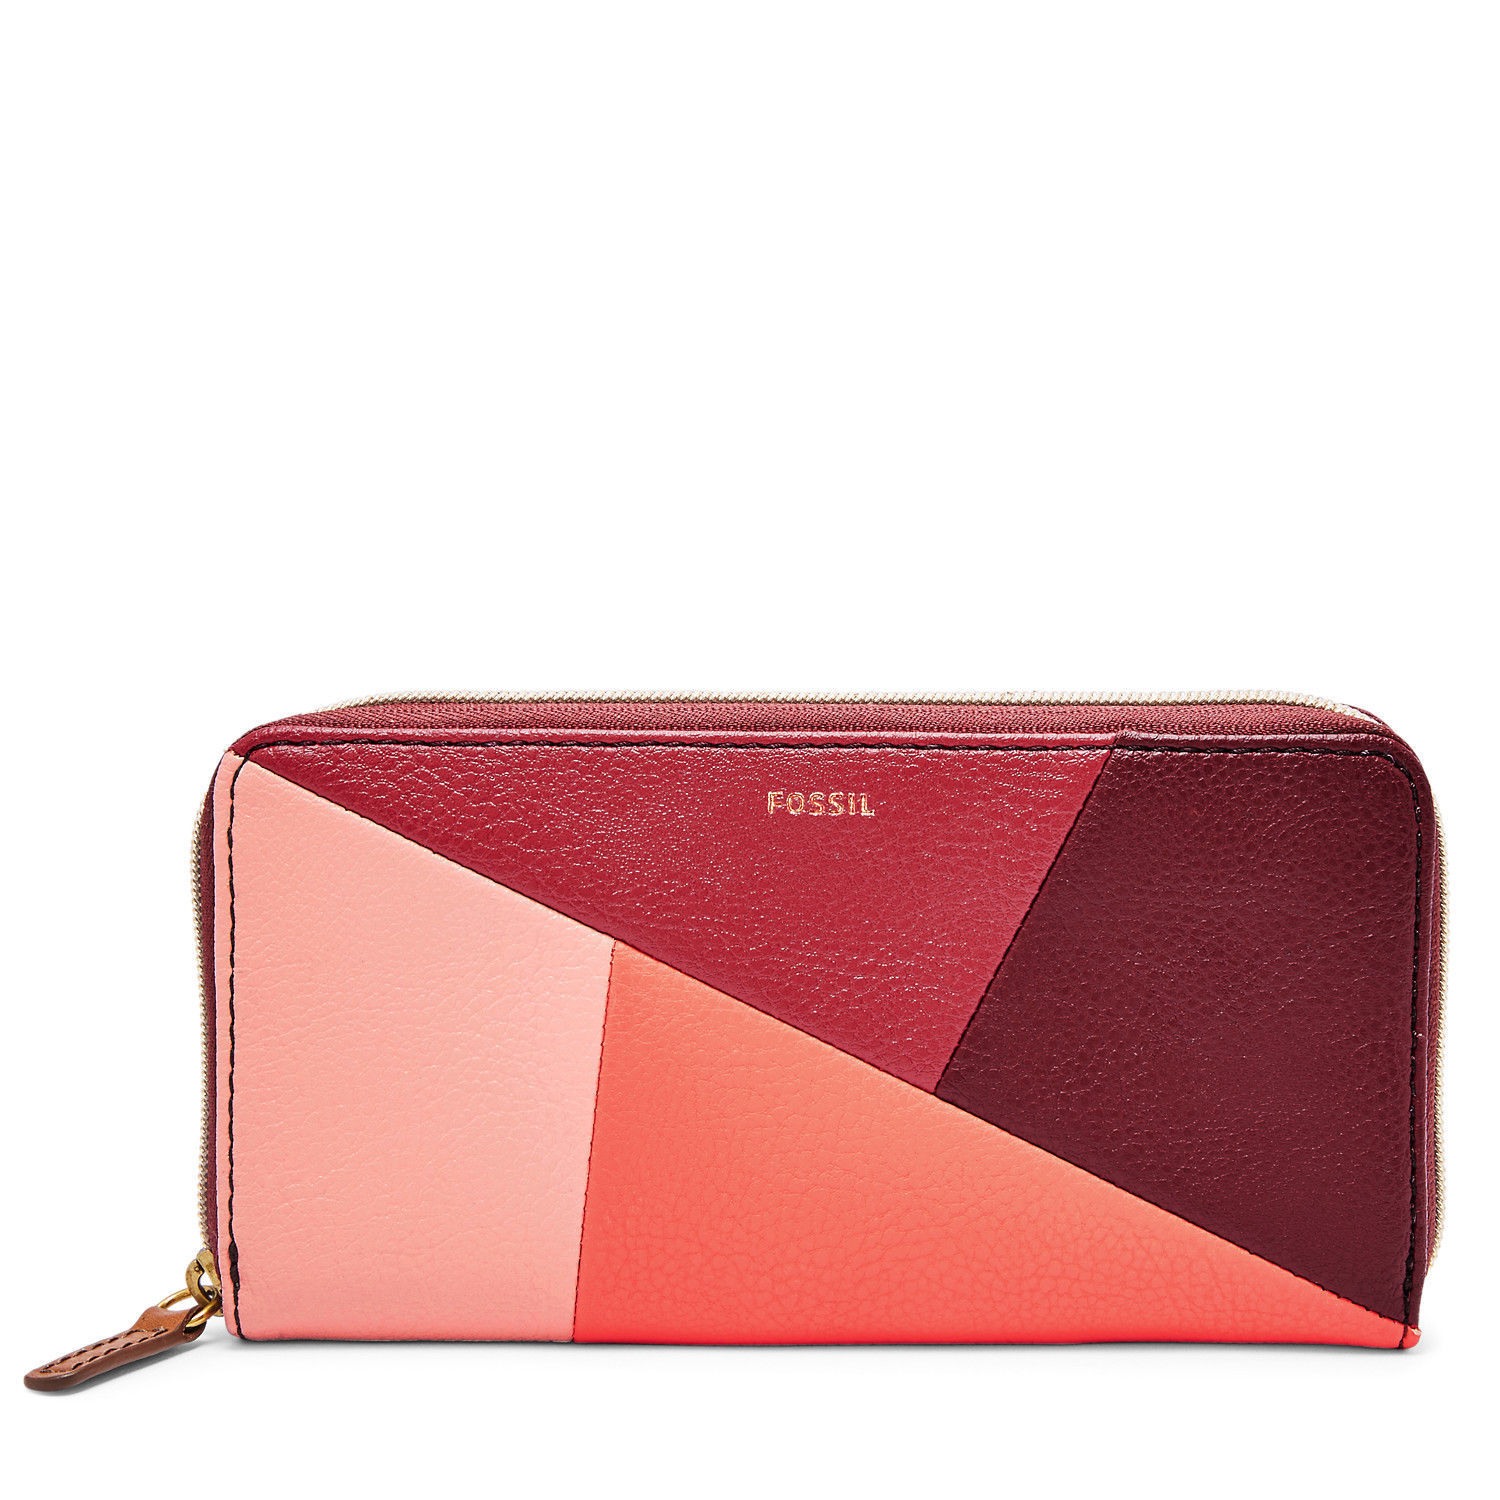 New Fossil Women's Jayda Zip Around Clutch Red Multi